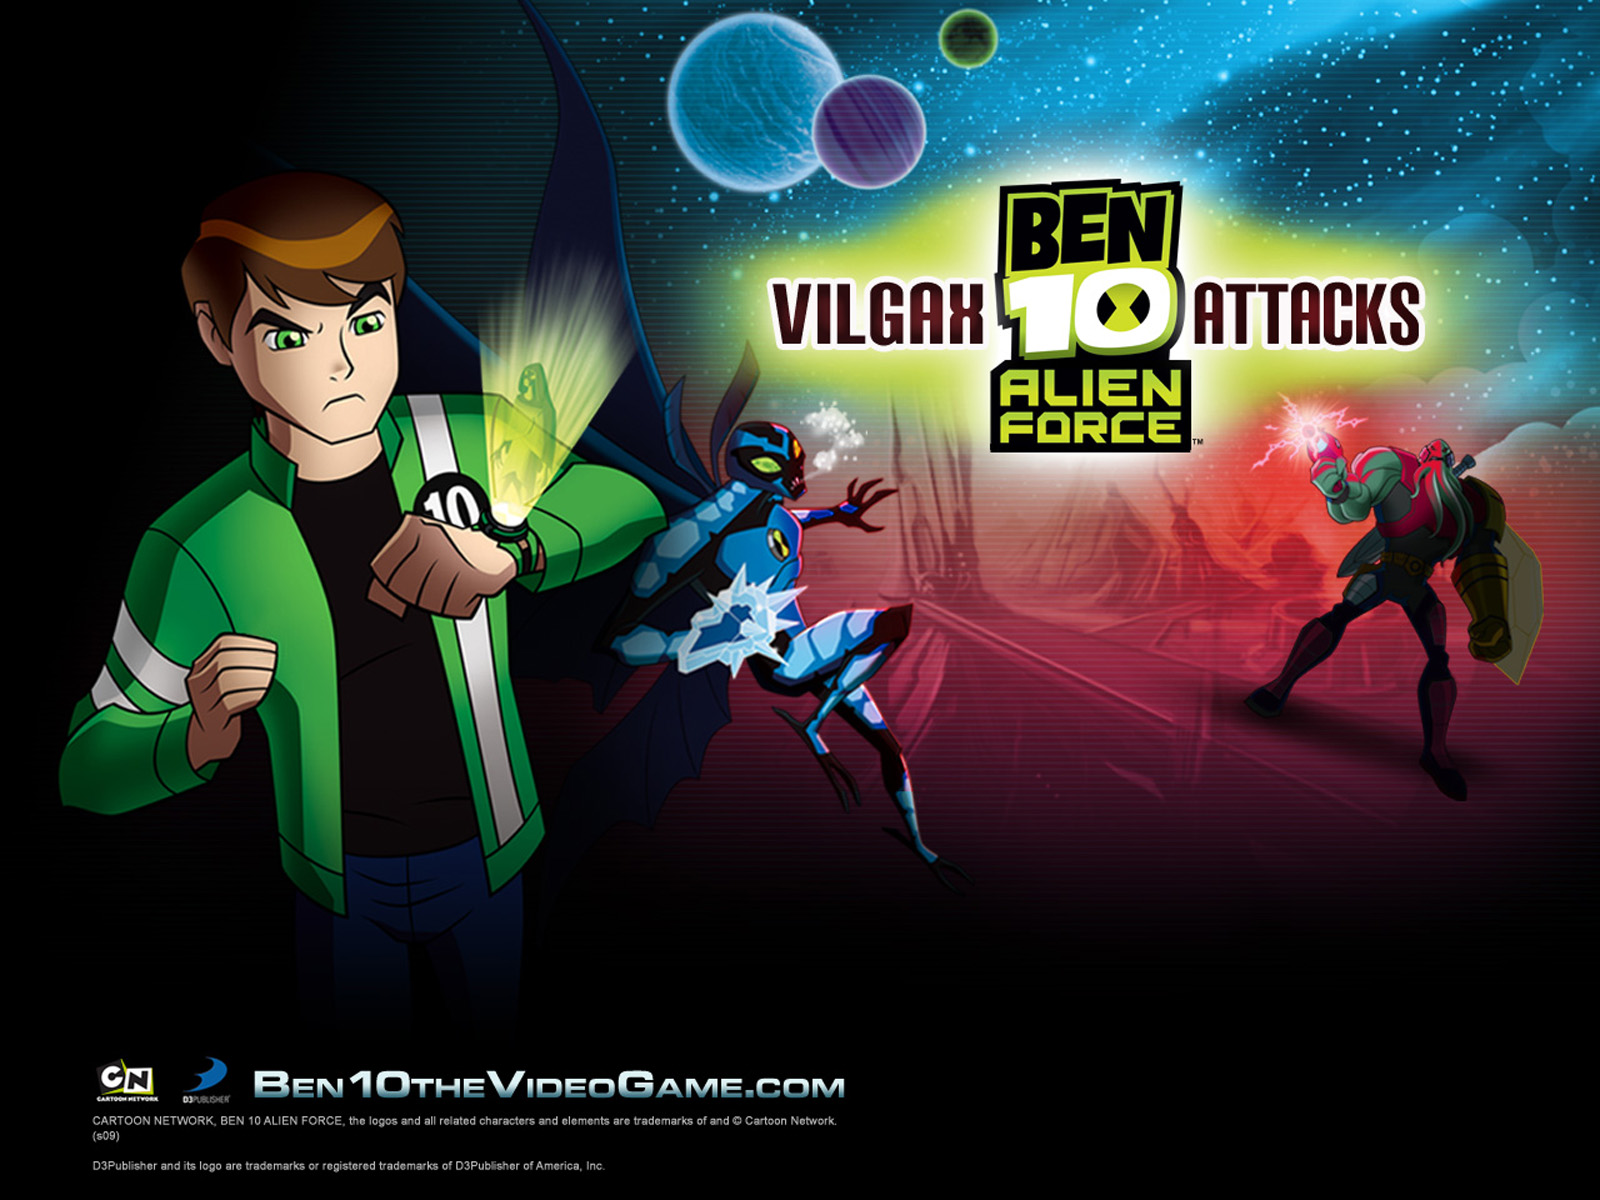 http://1.bp.blogspot.com/-qkISDDUh0Kg/ToiPkGNrKJI/AAAAAAAAAZA/thM-GRKPhS4/s1600/ben-10-alien-force-vilgax-attacks-wallpaper-1-1600x1200.jpg